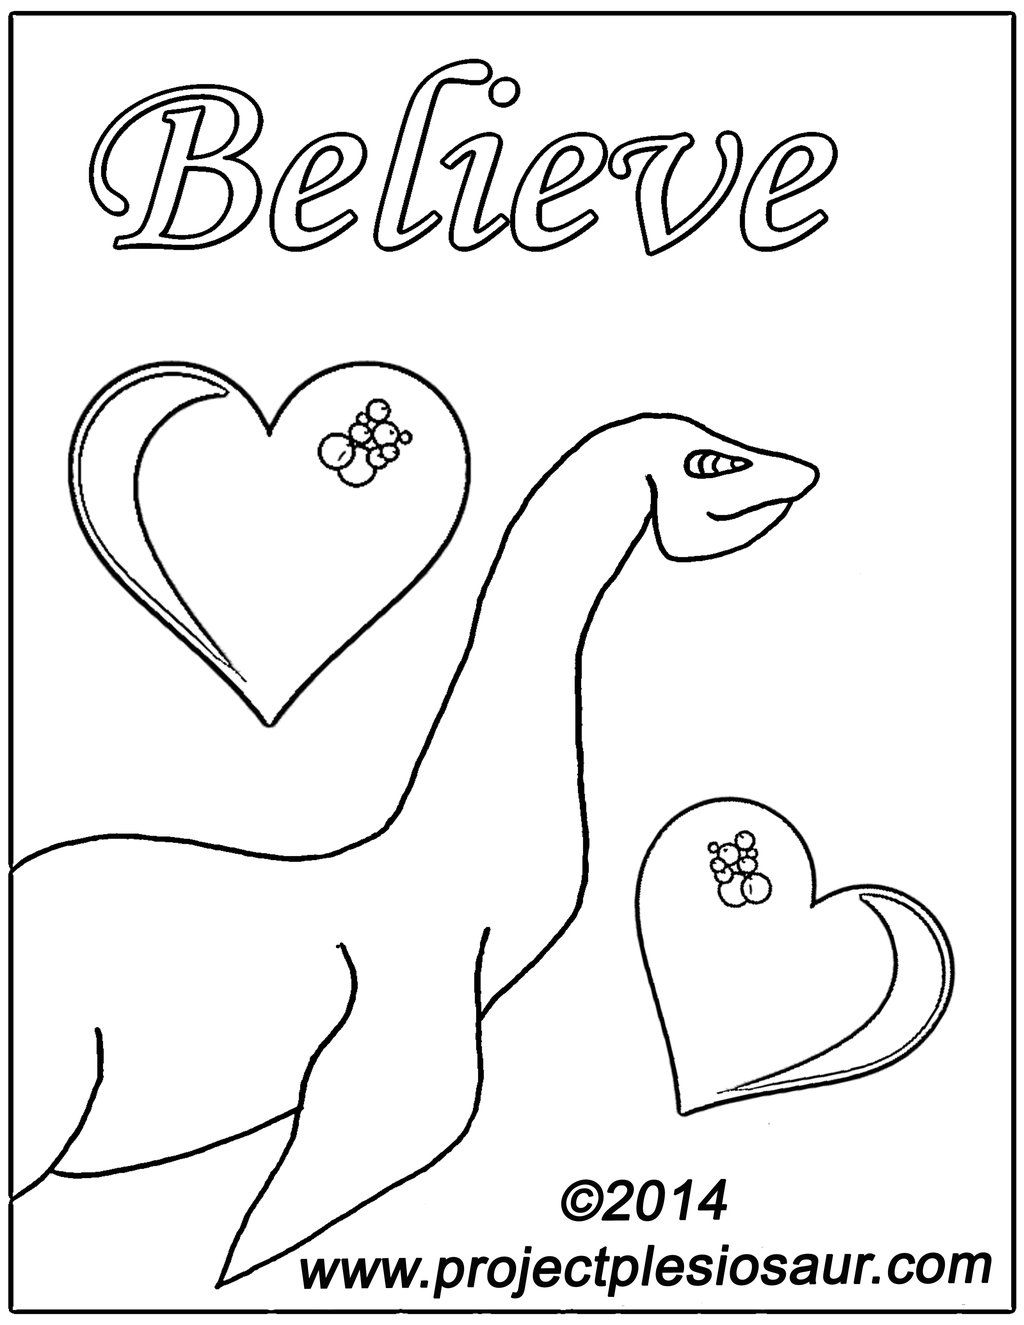 loch ness monster coloring pages loch ness monster coloring book coloring pages loch pages coloring monster ness